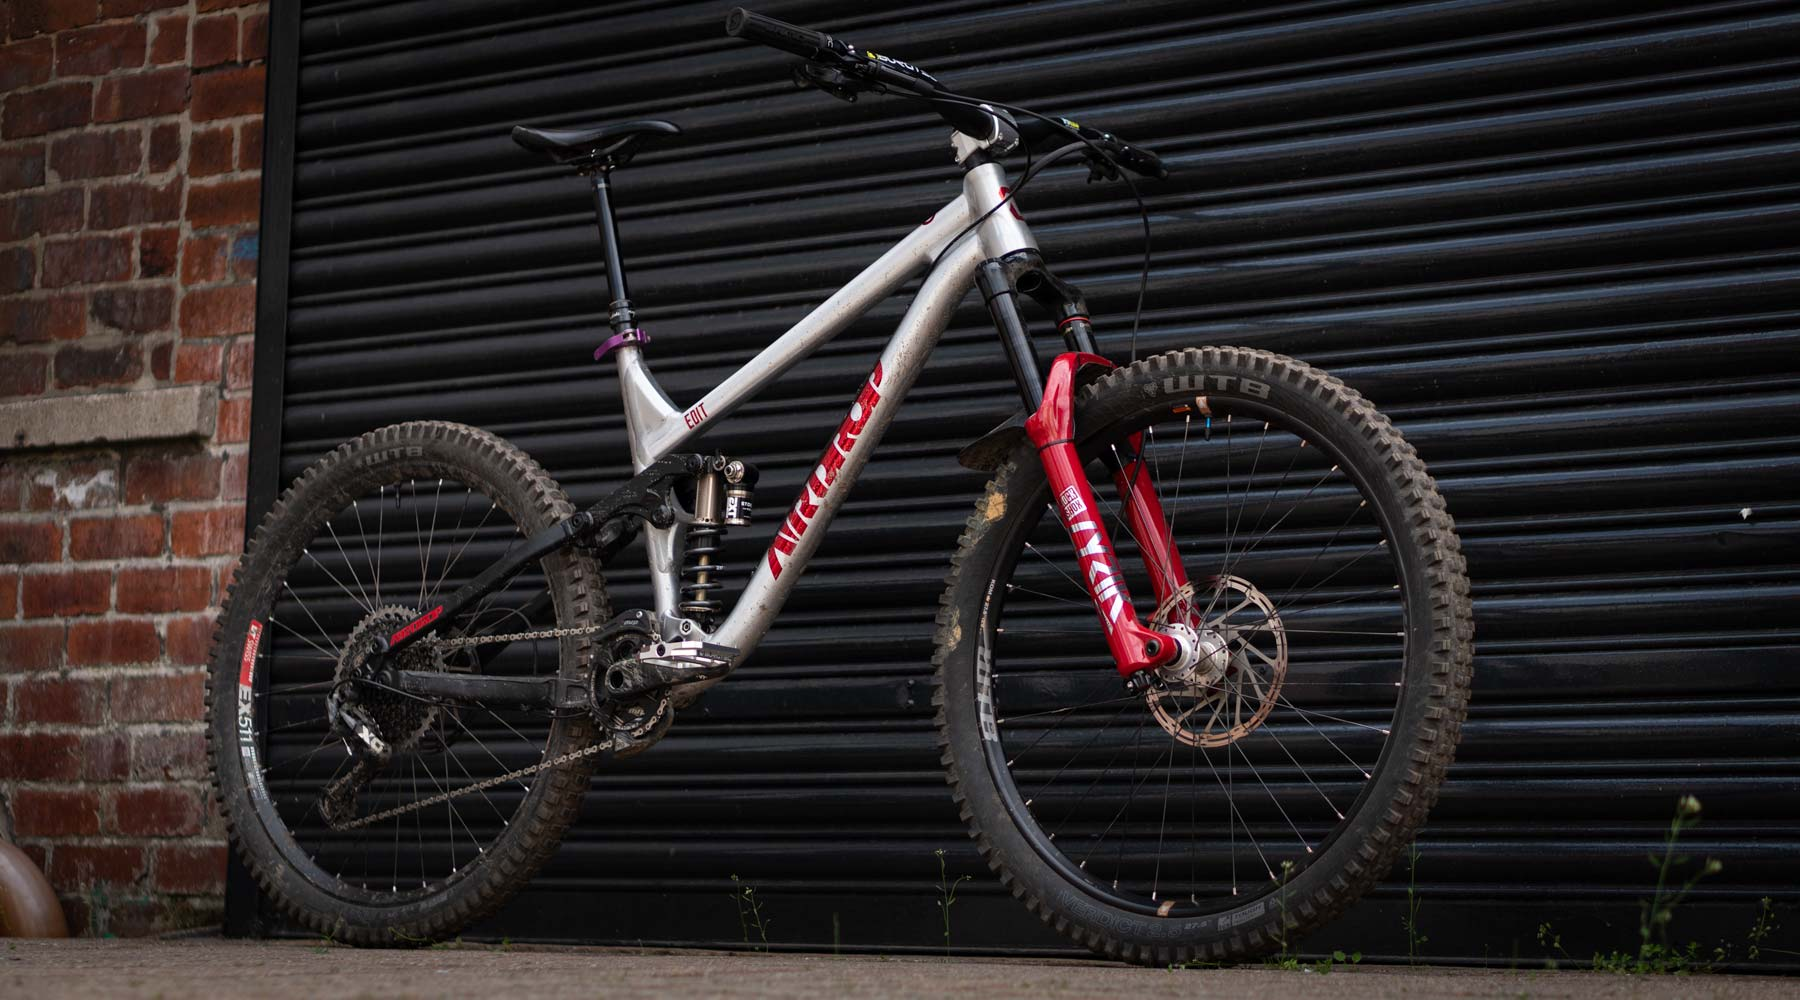 Bike Check: James' Edit v3